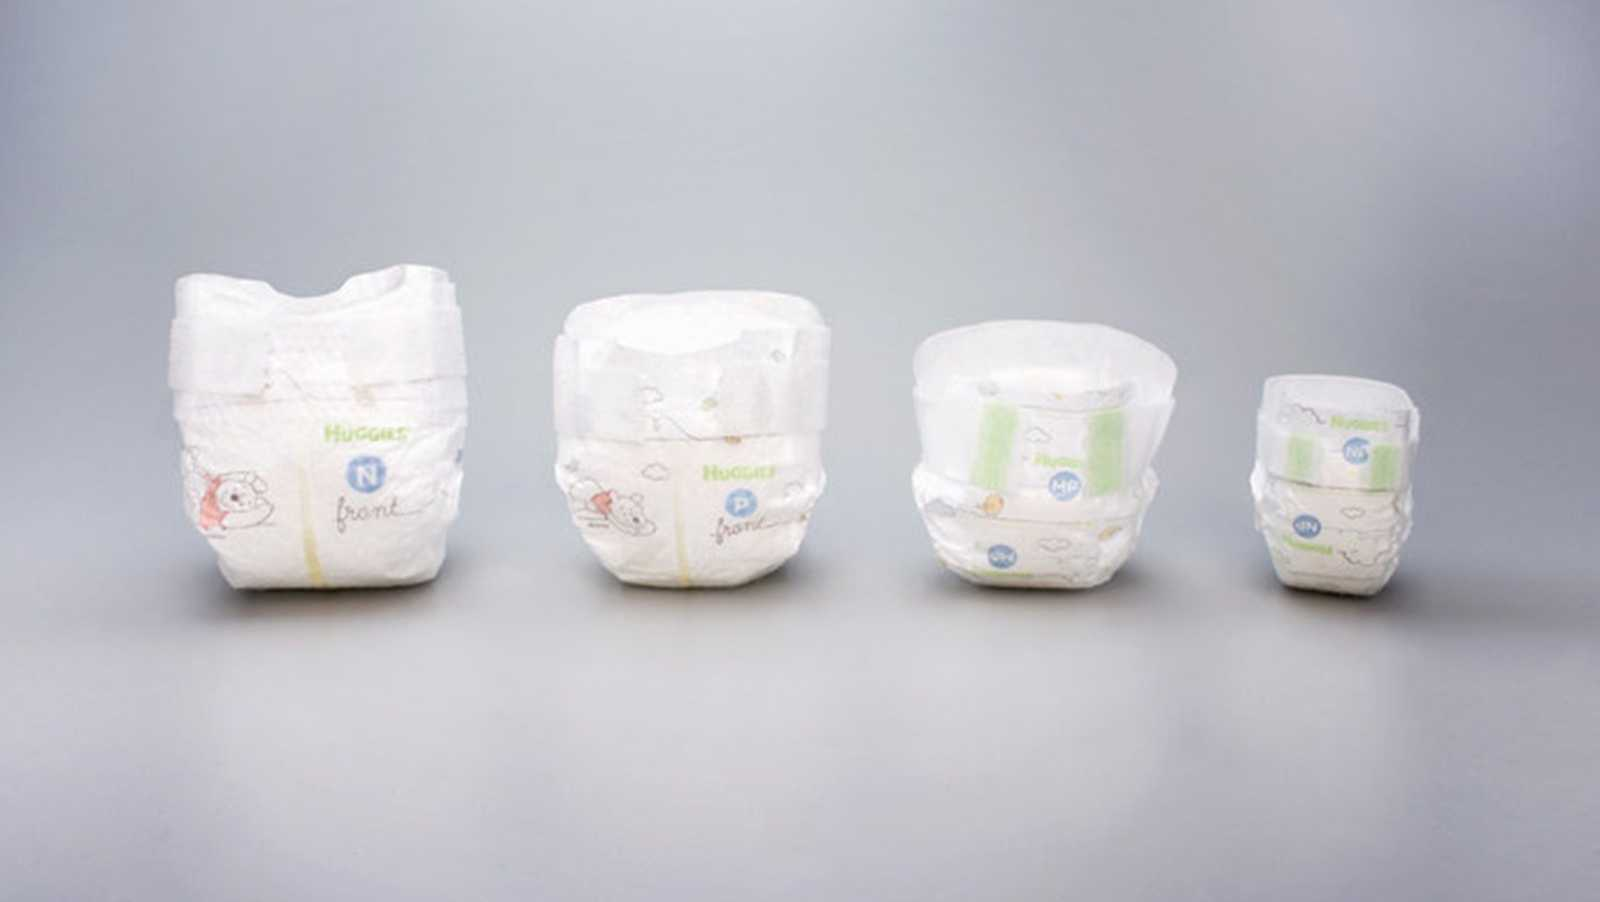 These tiny diapers fit babies less than 2 pounds